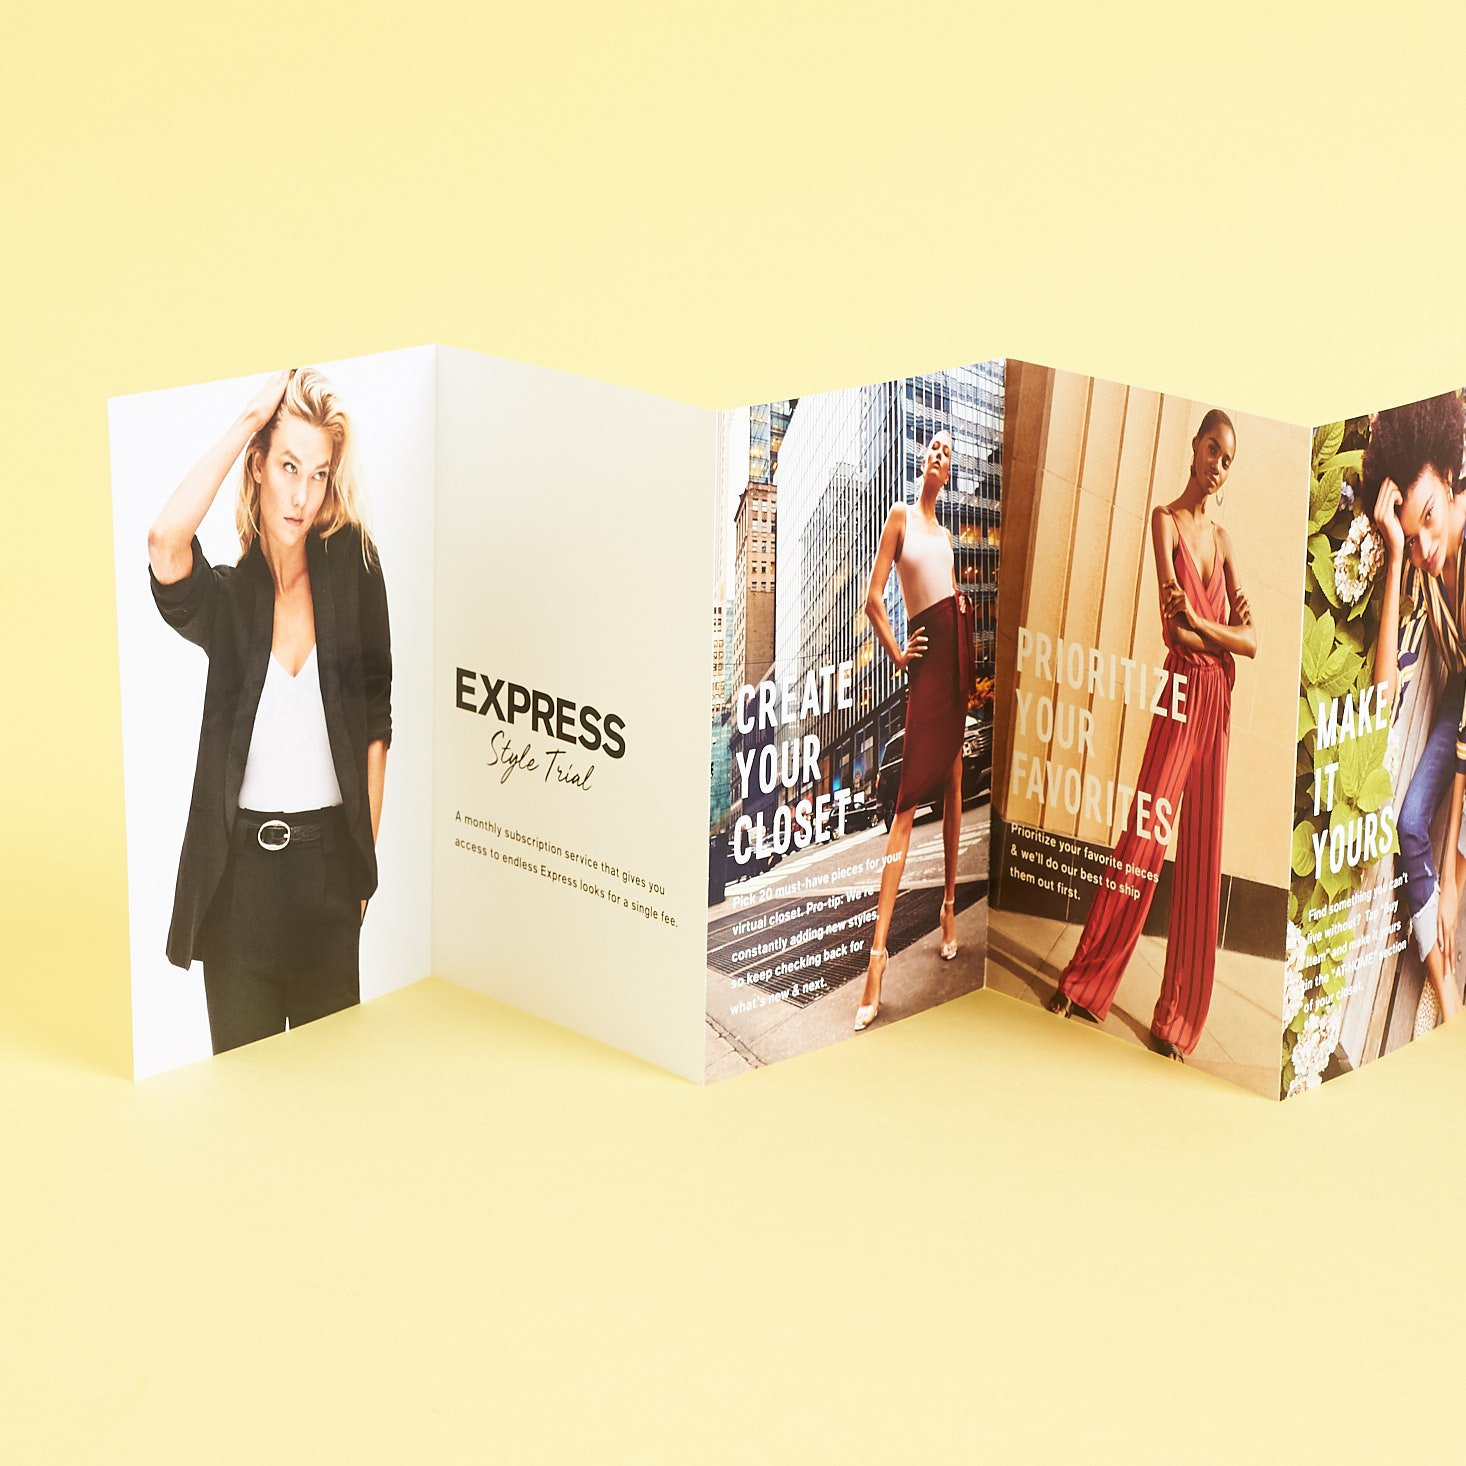 Express Style Trial info book accordion